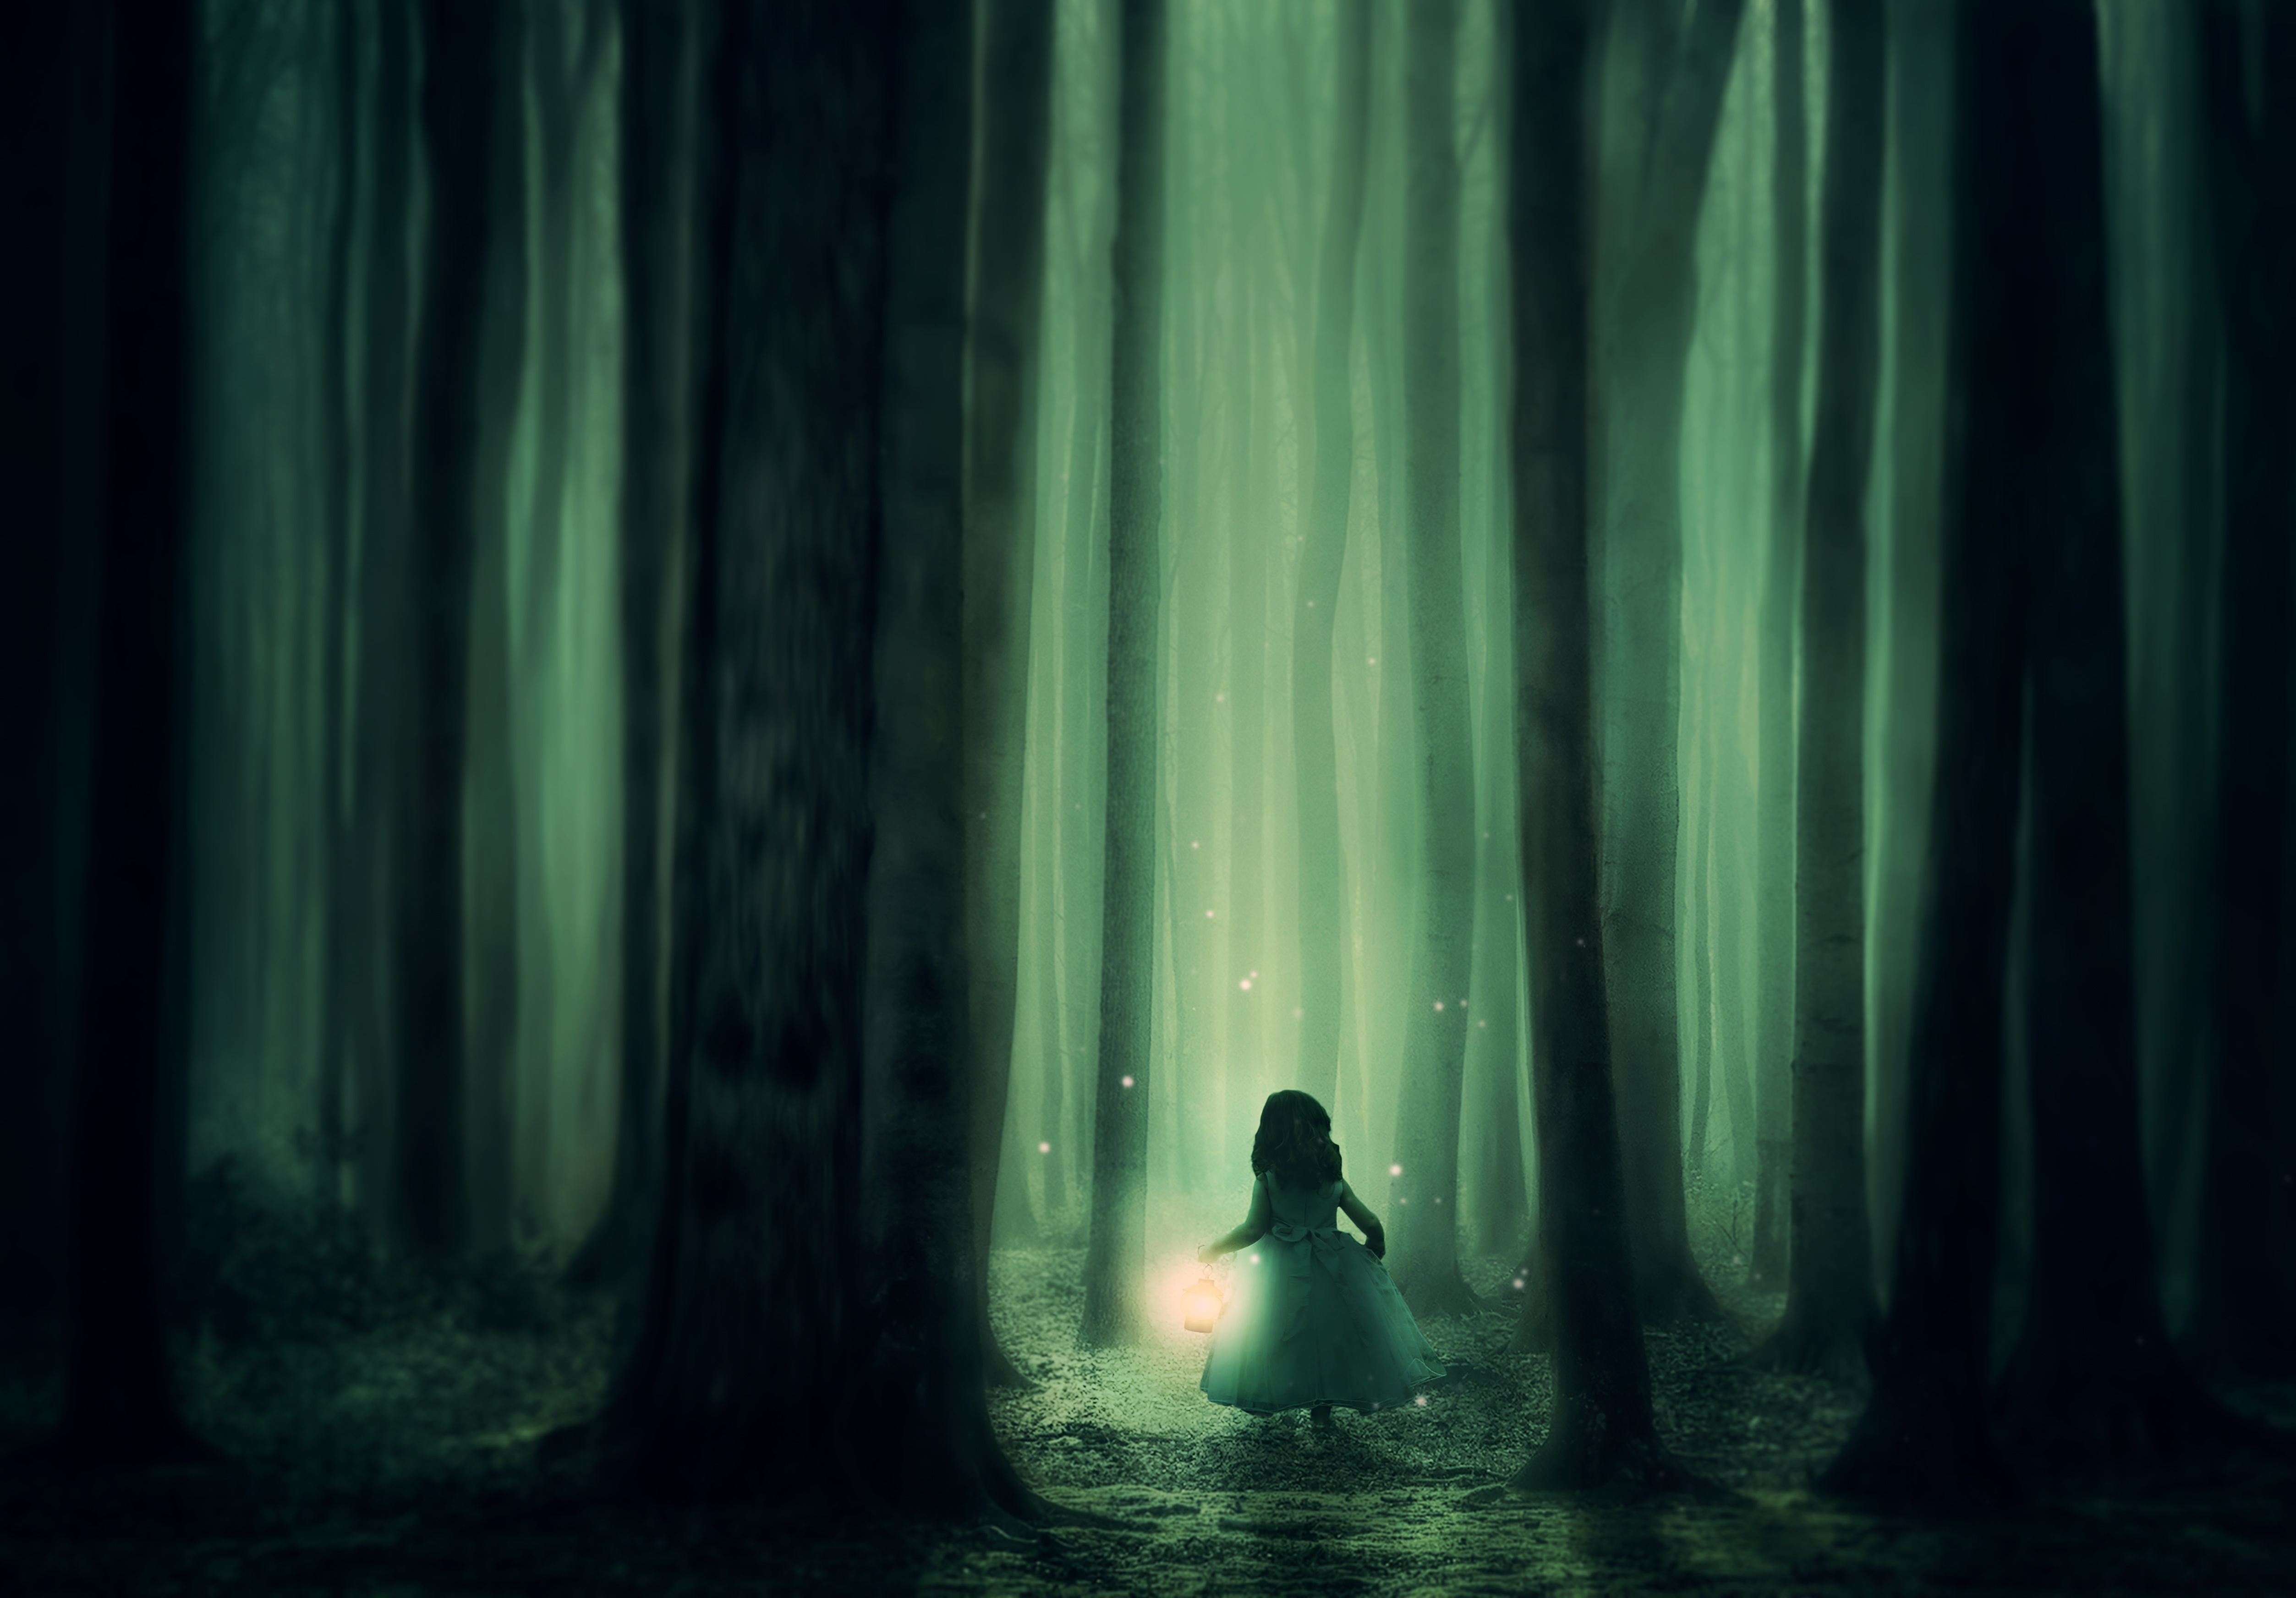 120238 download wallpaper Dark, Child, Forest, Fog, Night, Fairy, Fabulous, Lamp, Lantern, Stroll screensavers and pictures for free